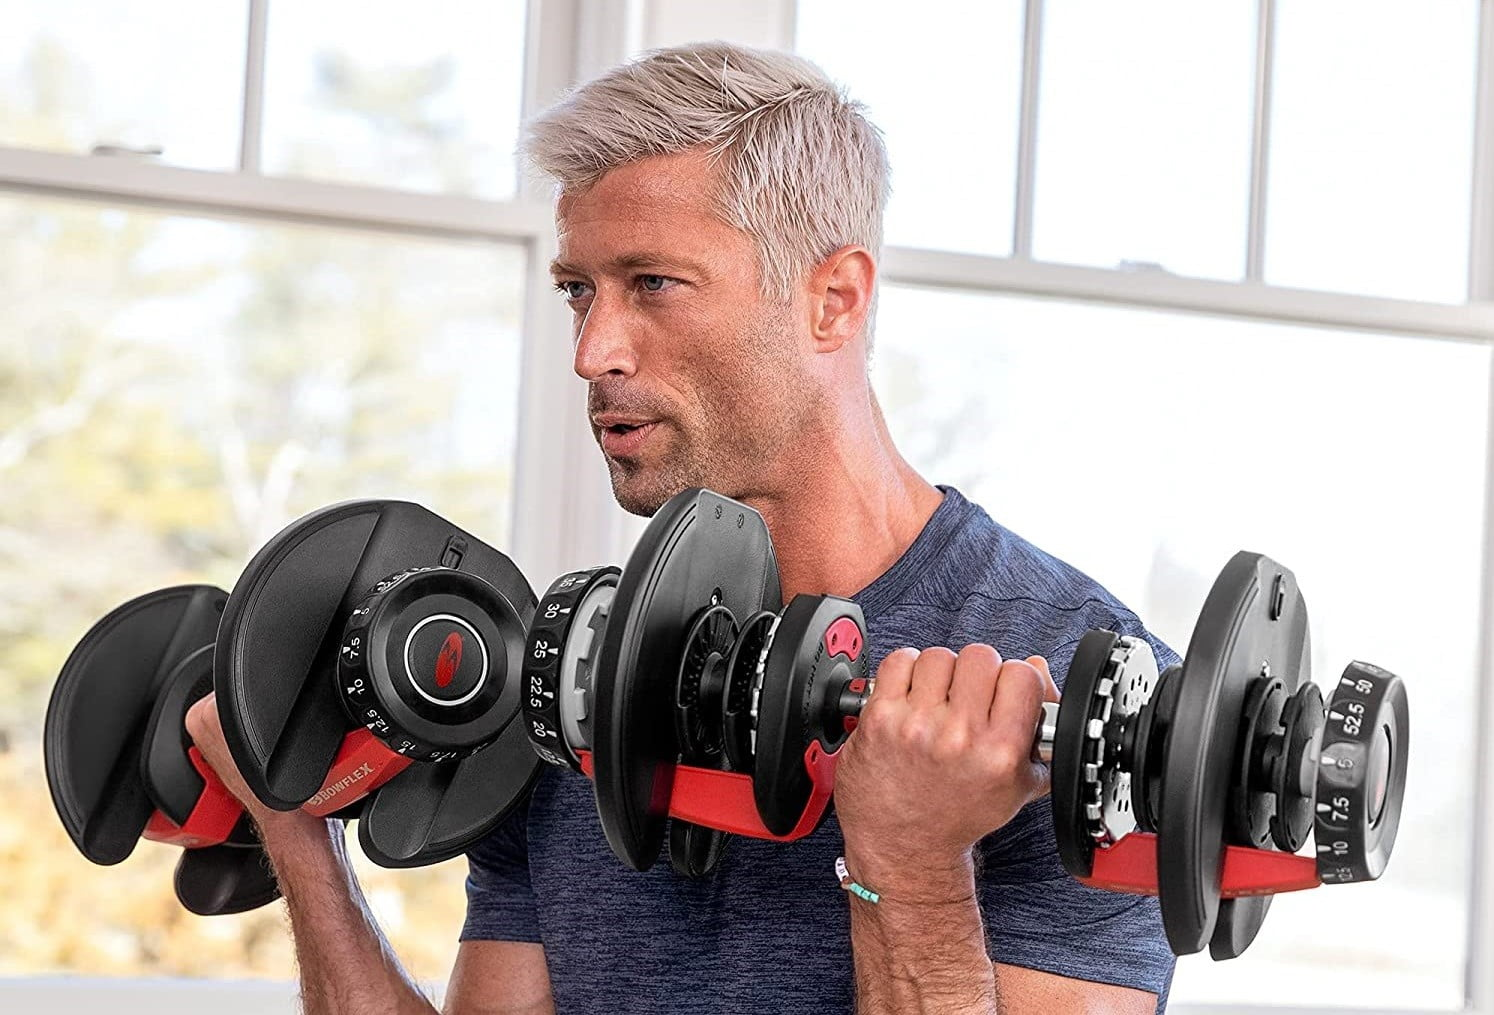 You Won't Believe How Cheap Bowflex Dumbbells Are at Amazon Today